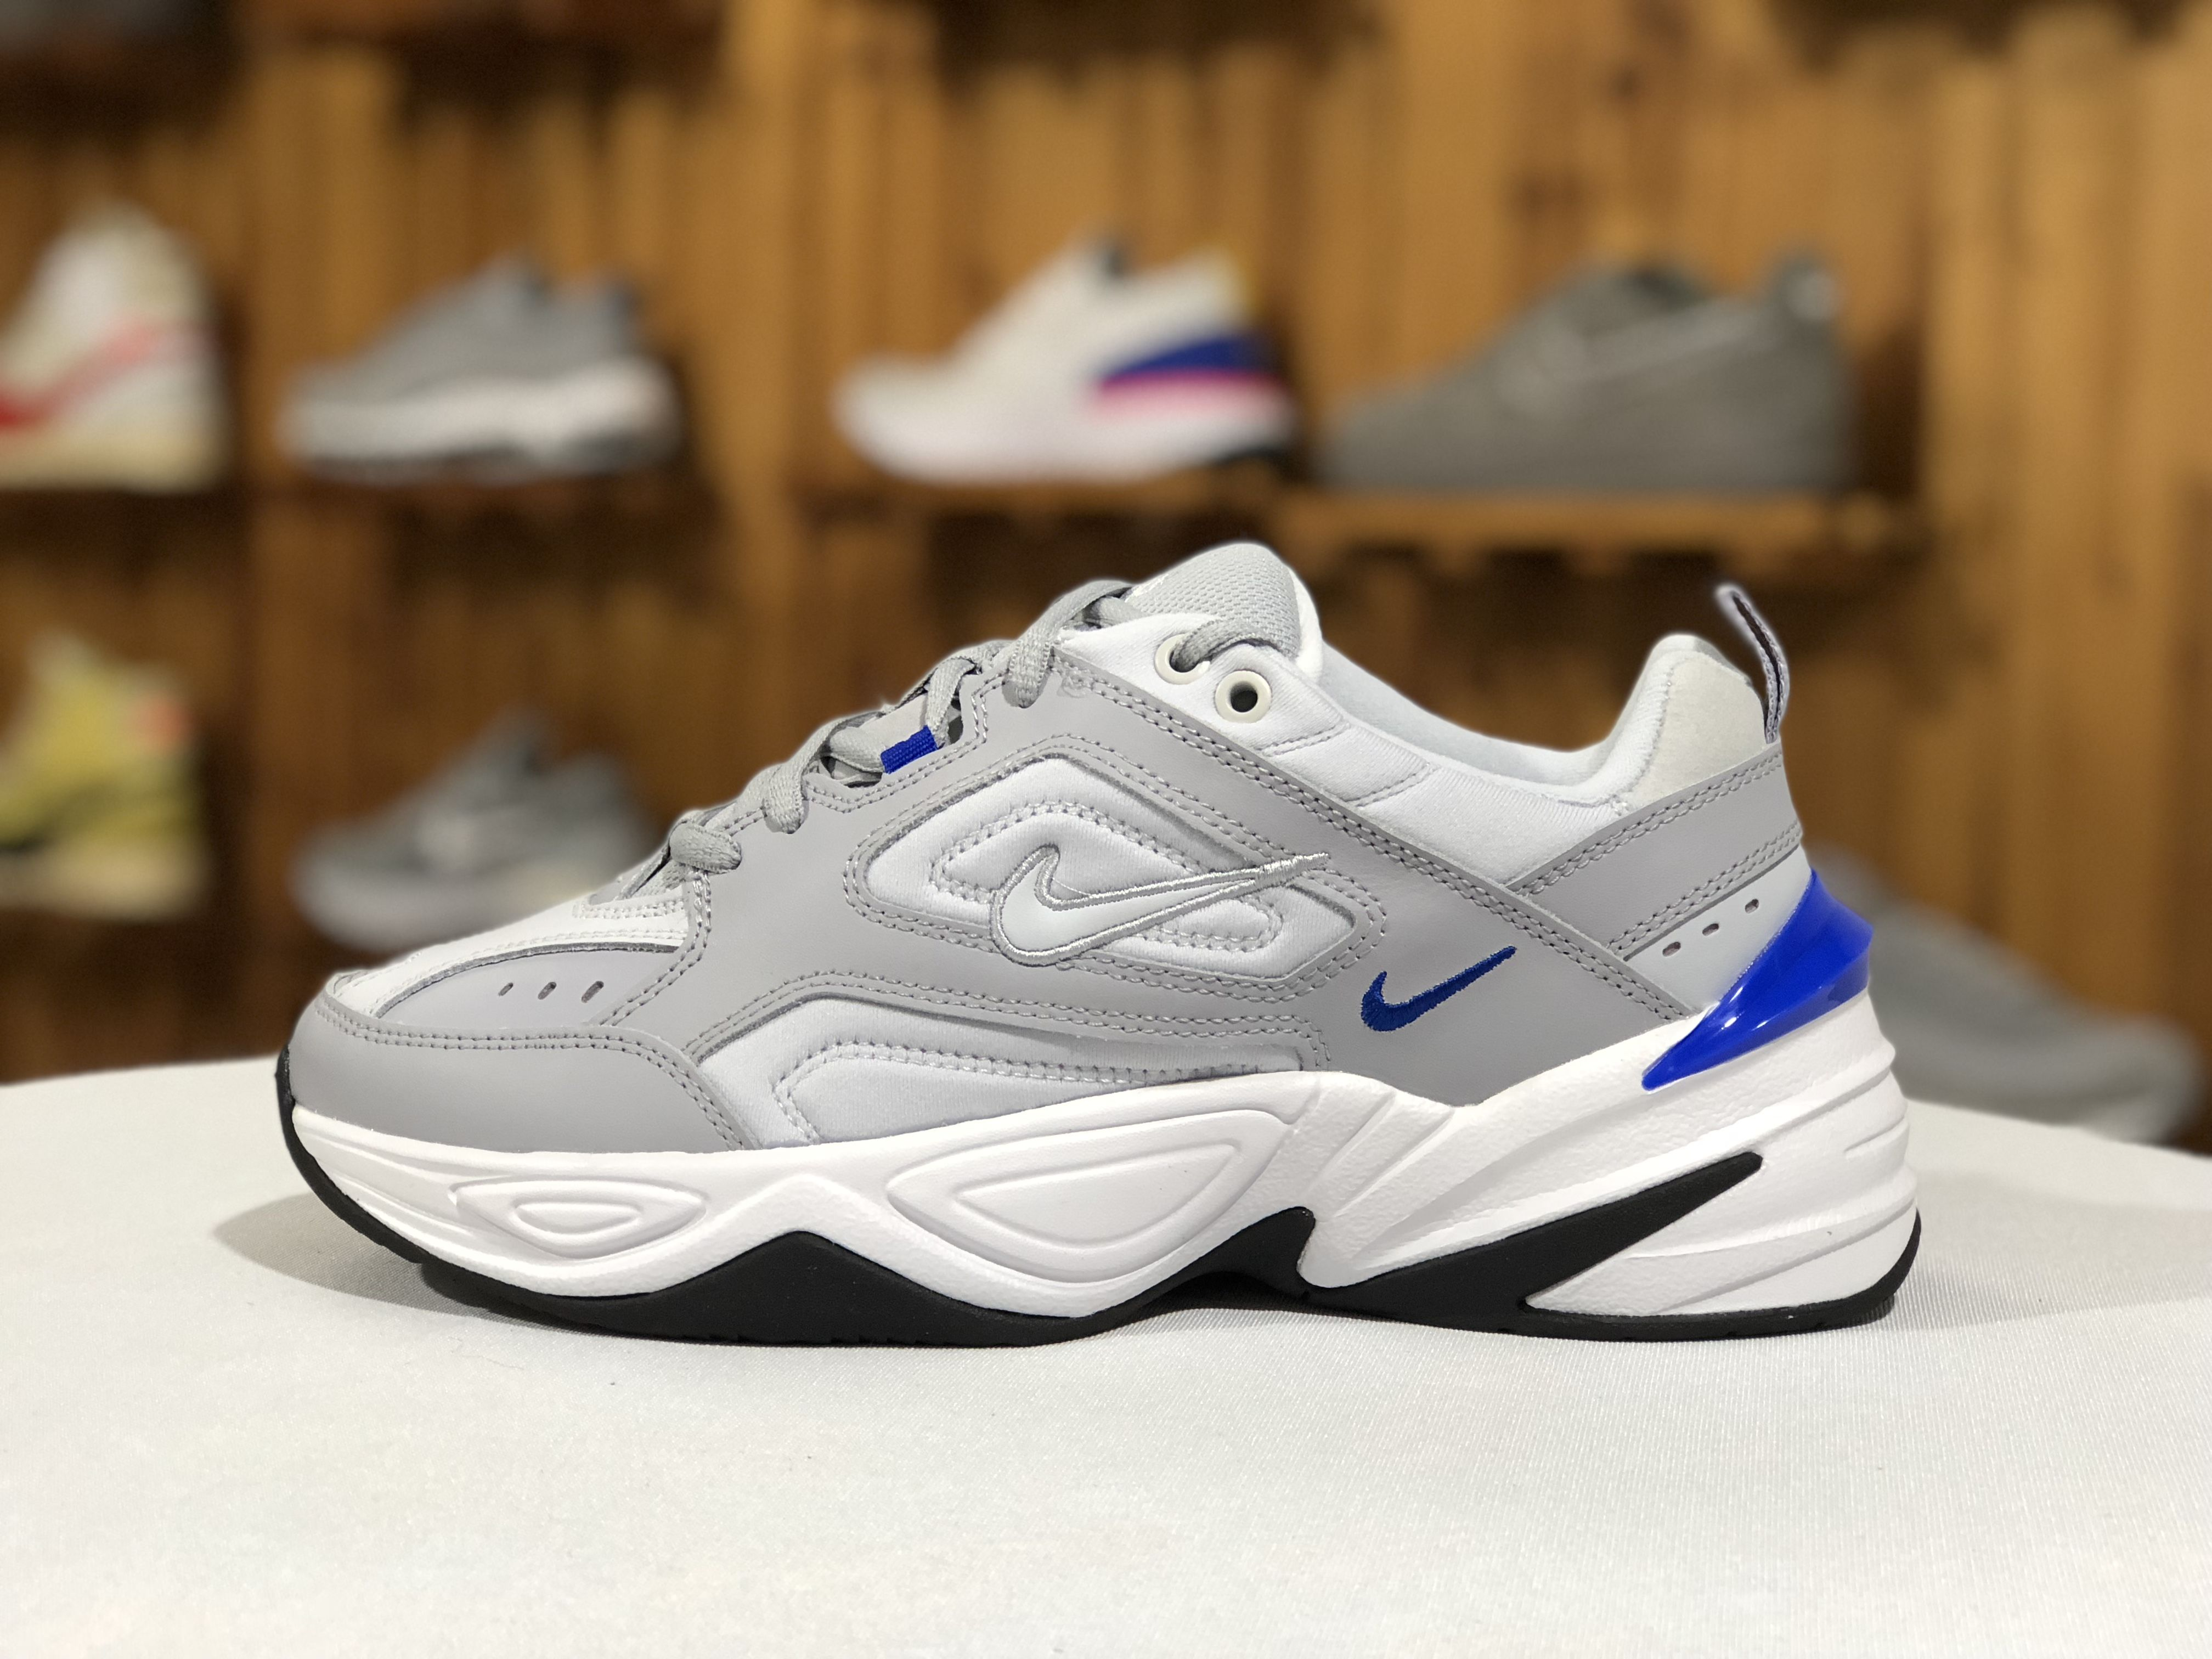 new style 34547 8231f 2019 Nike M2K Tekno Wolf Grey Racer Blue Men Chunky Daddy Shoes